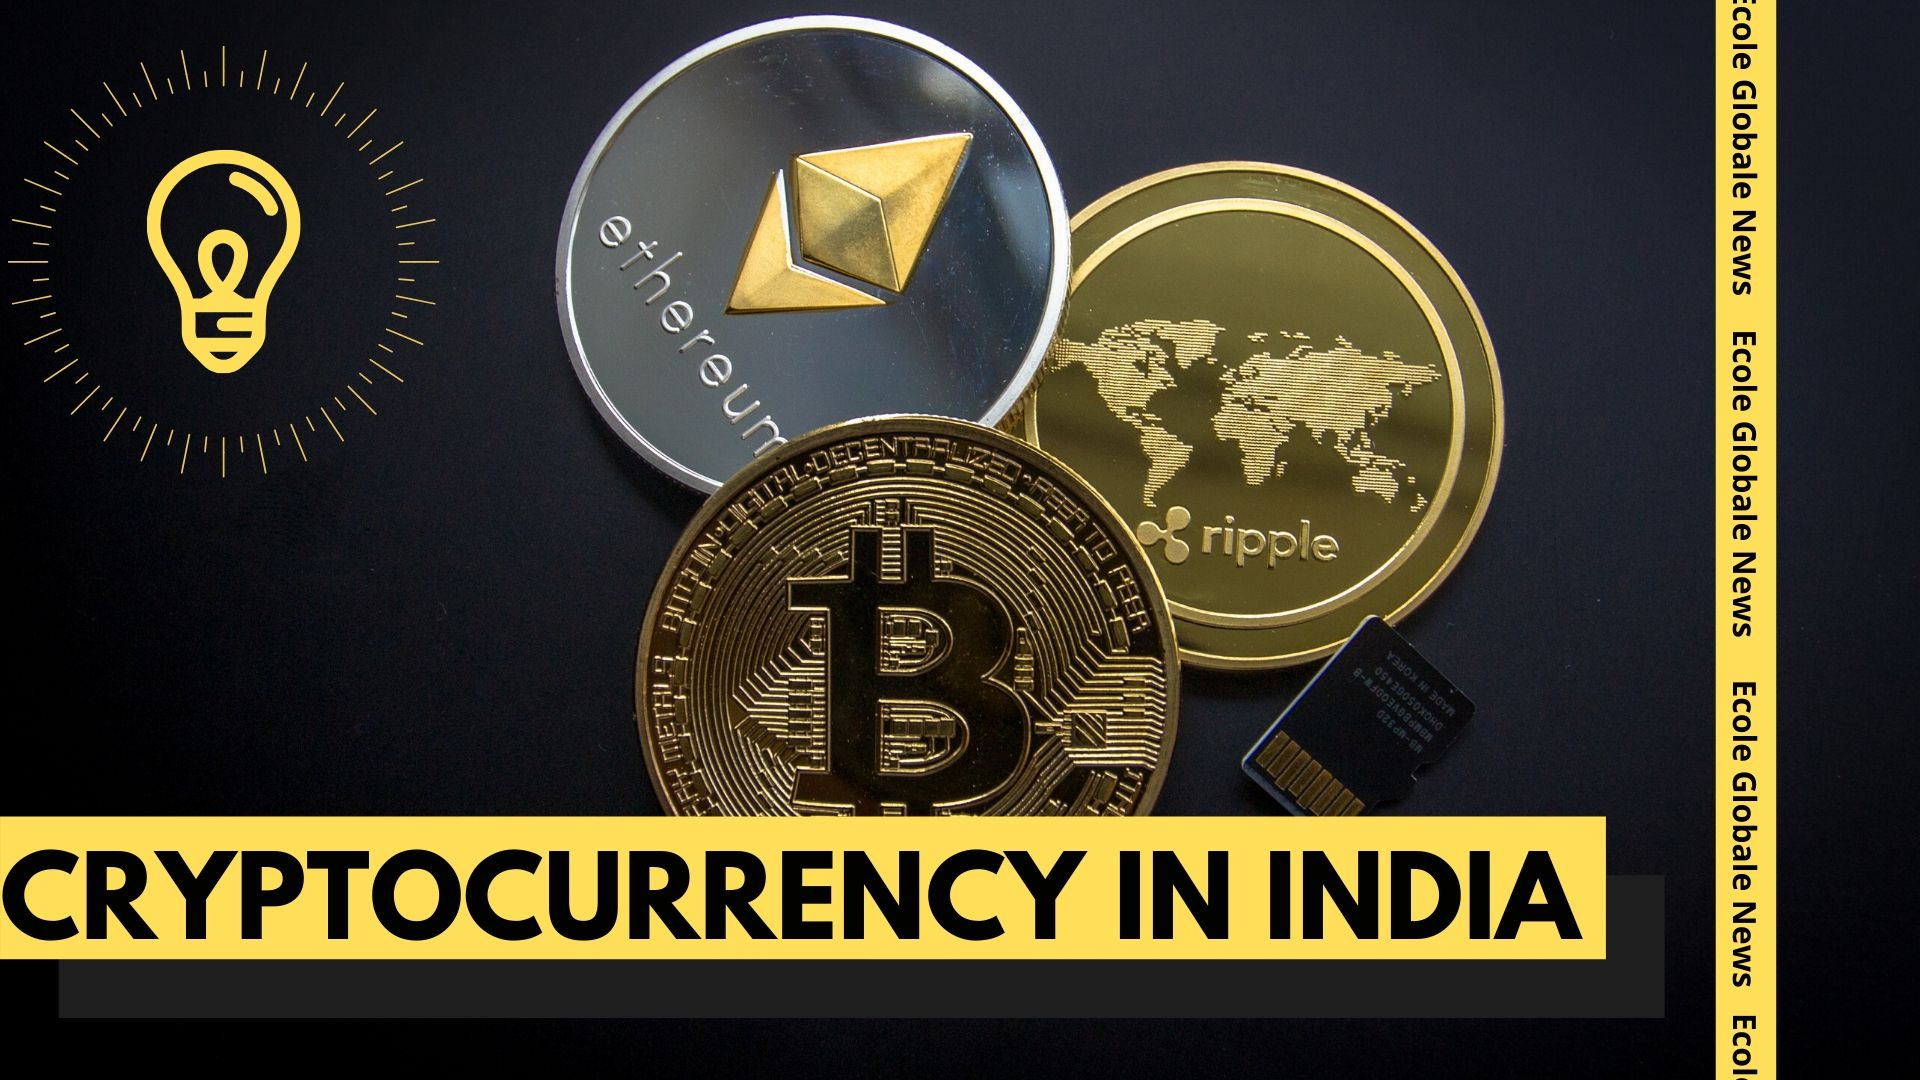 NEW OPPORTUNITIES FOR POLICYMAKERS TO INVEST IN CRYPTOCURRENCY IN INDIA